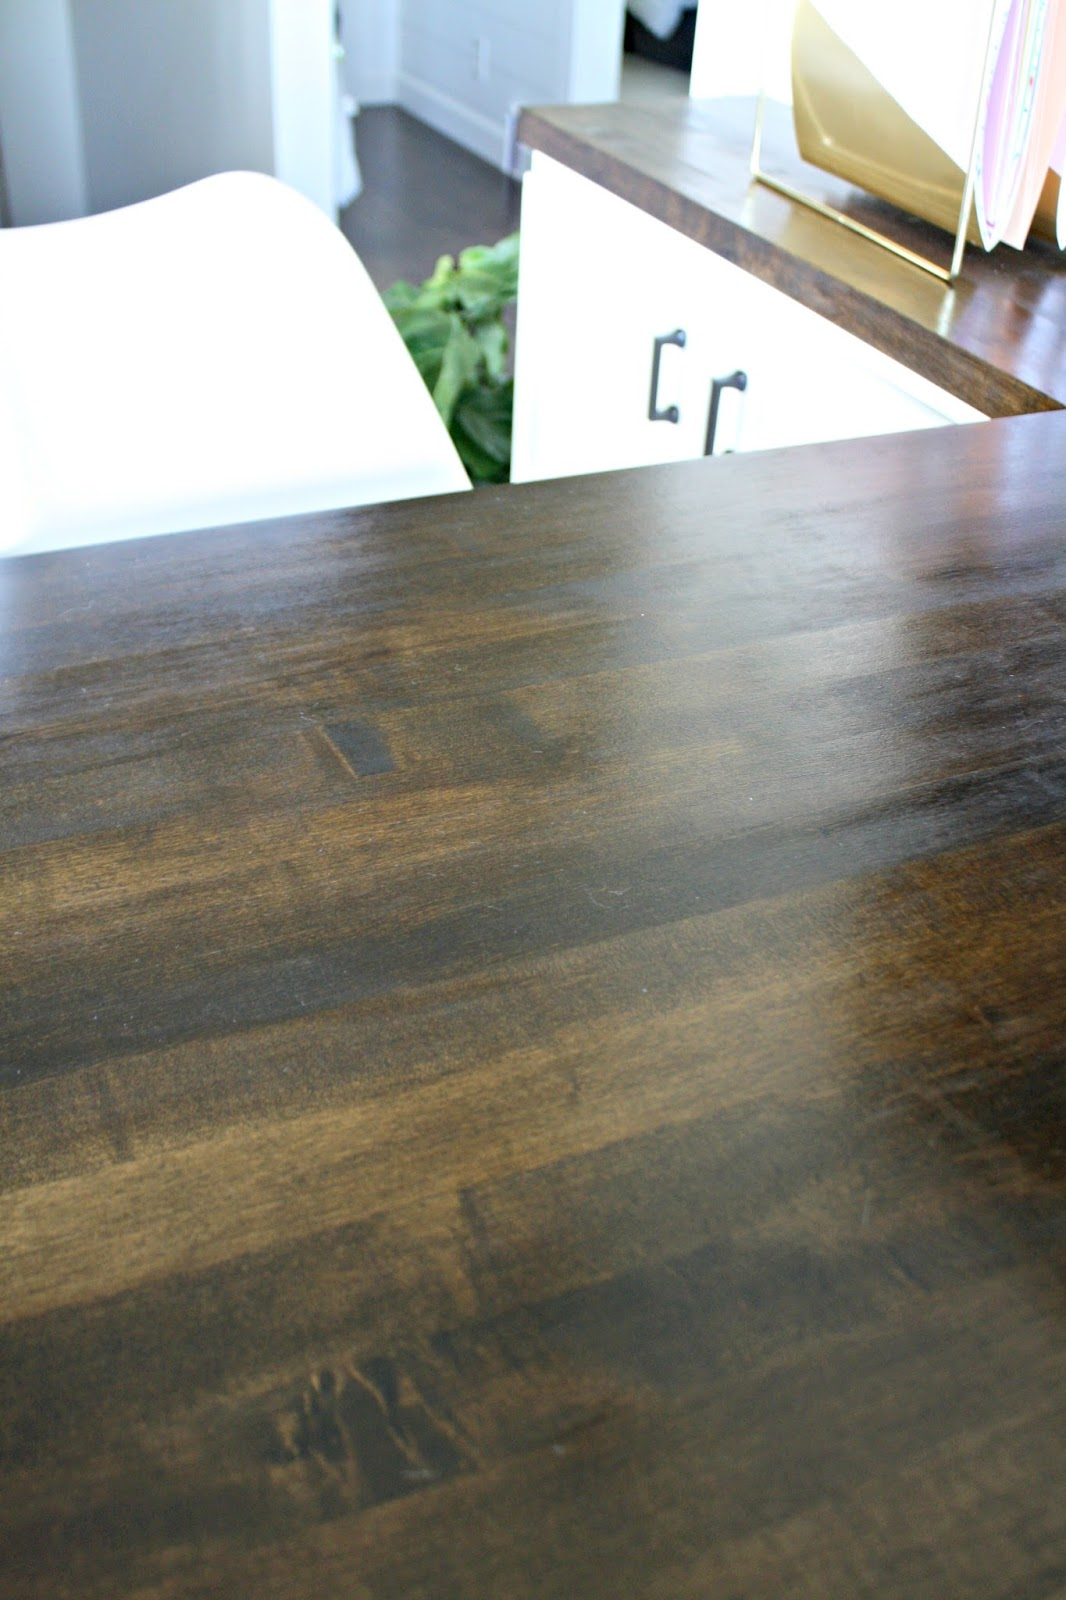 I Love This Stain And It Is The Color Use Most On Projects Around House S A Beautiful Dark Brown With No Red Undertones